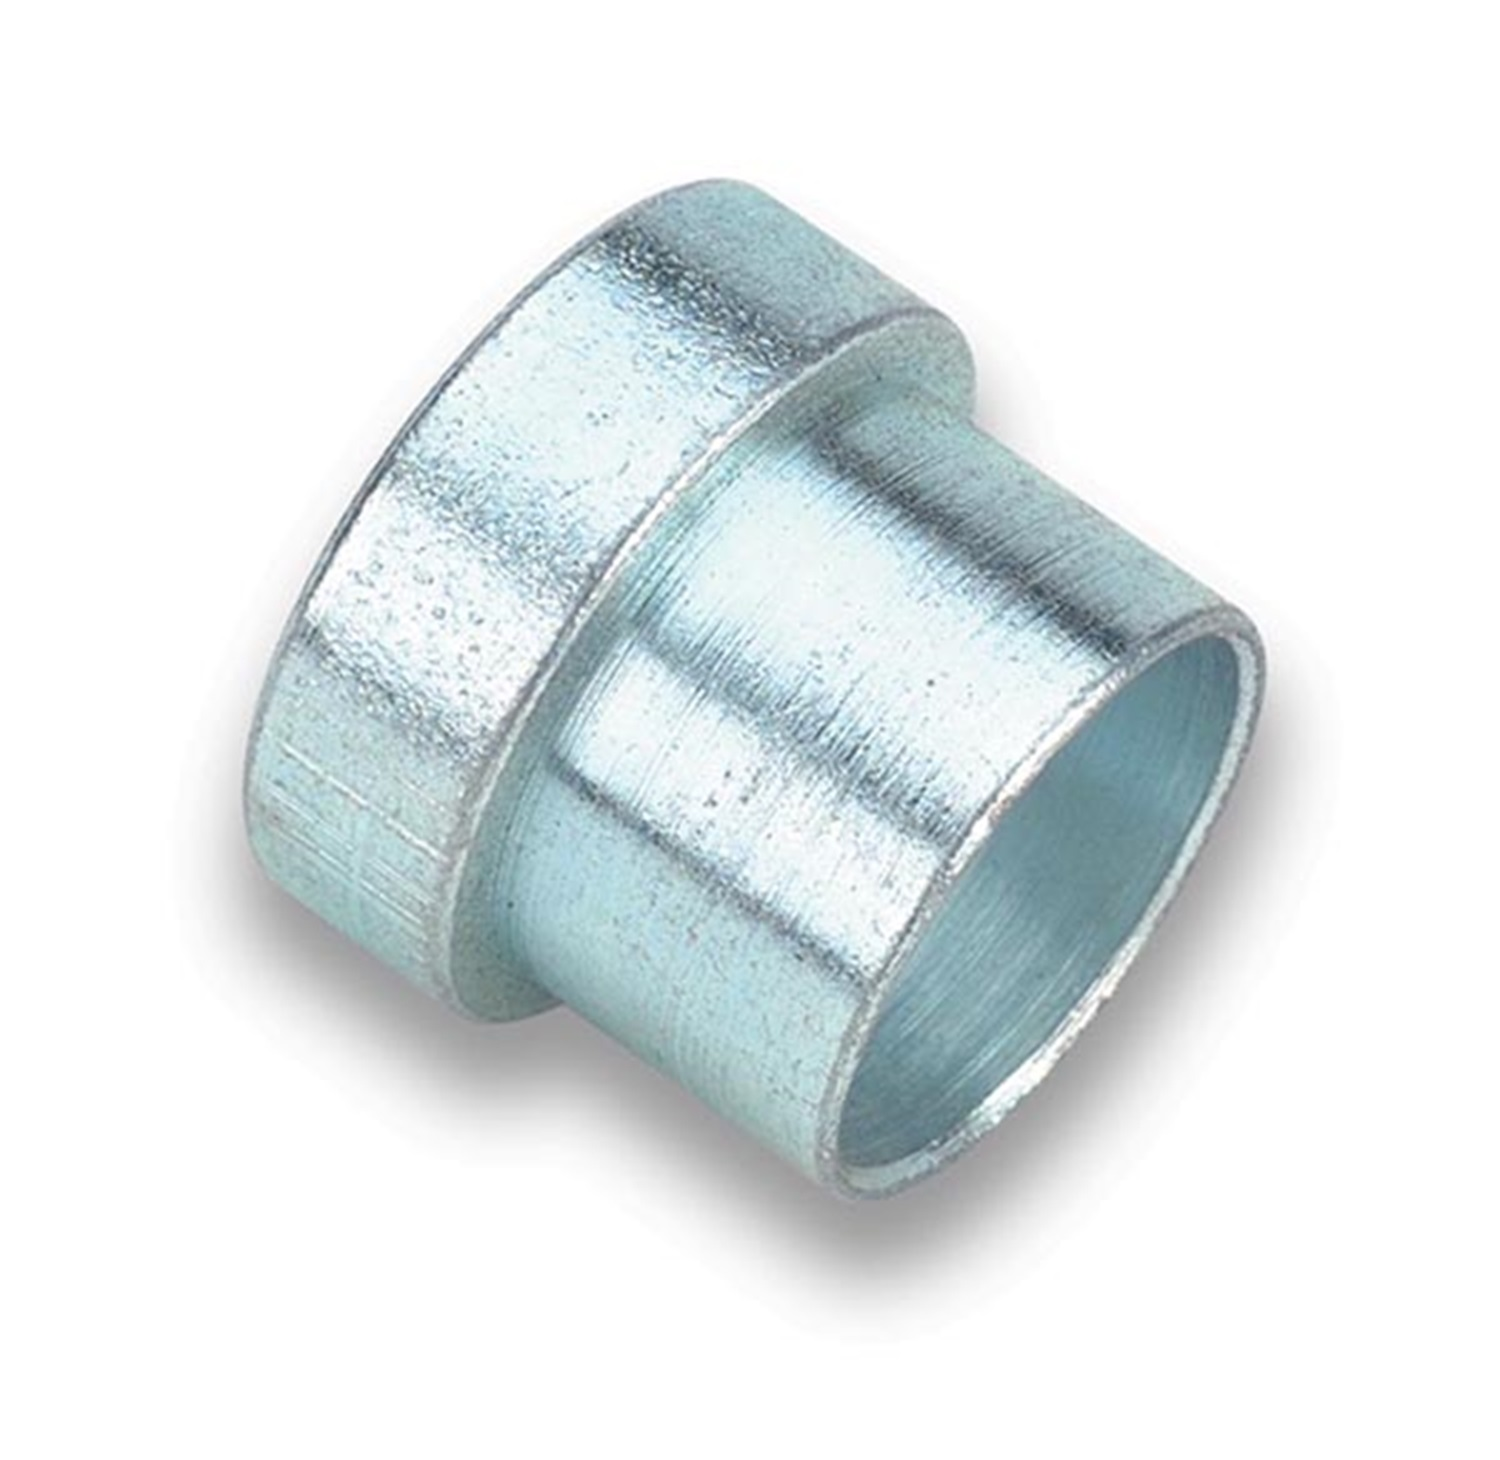 Earls Plumbing Plumbing 561903ERL Steel Tube Sleeve  AN To AN  Fitting Size 3  2 Per Package  Zinc Plated at Sears.com